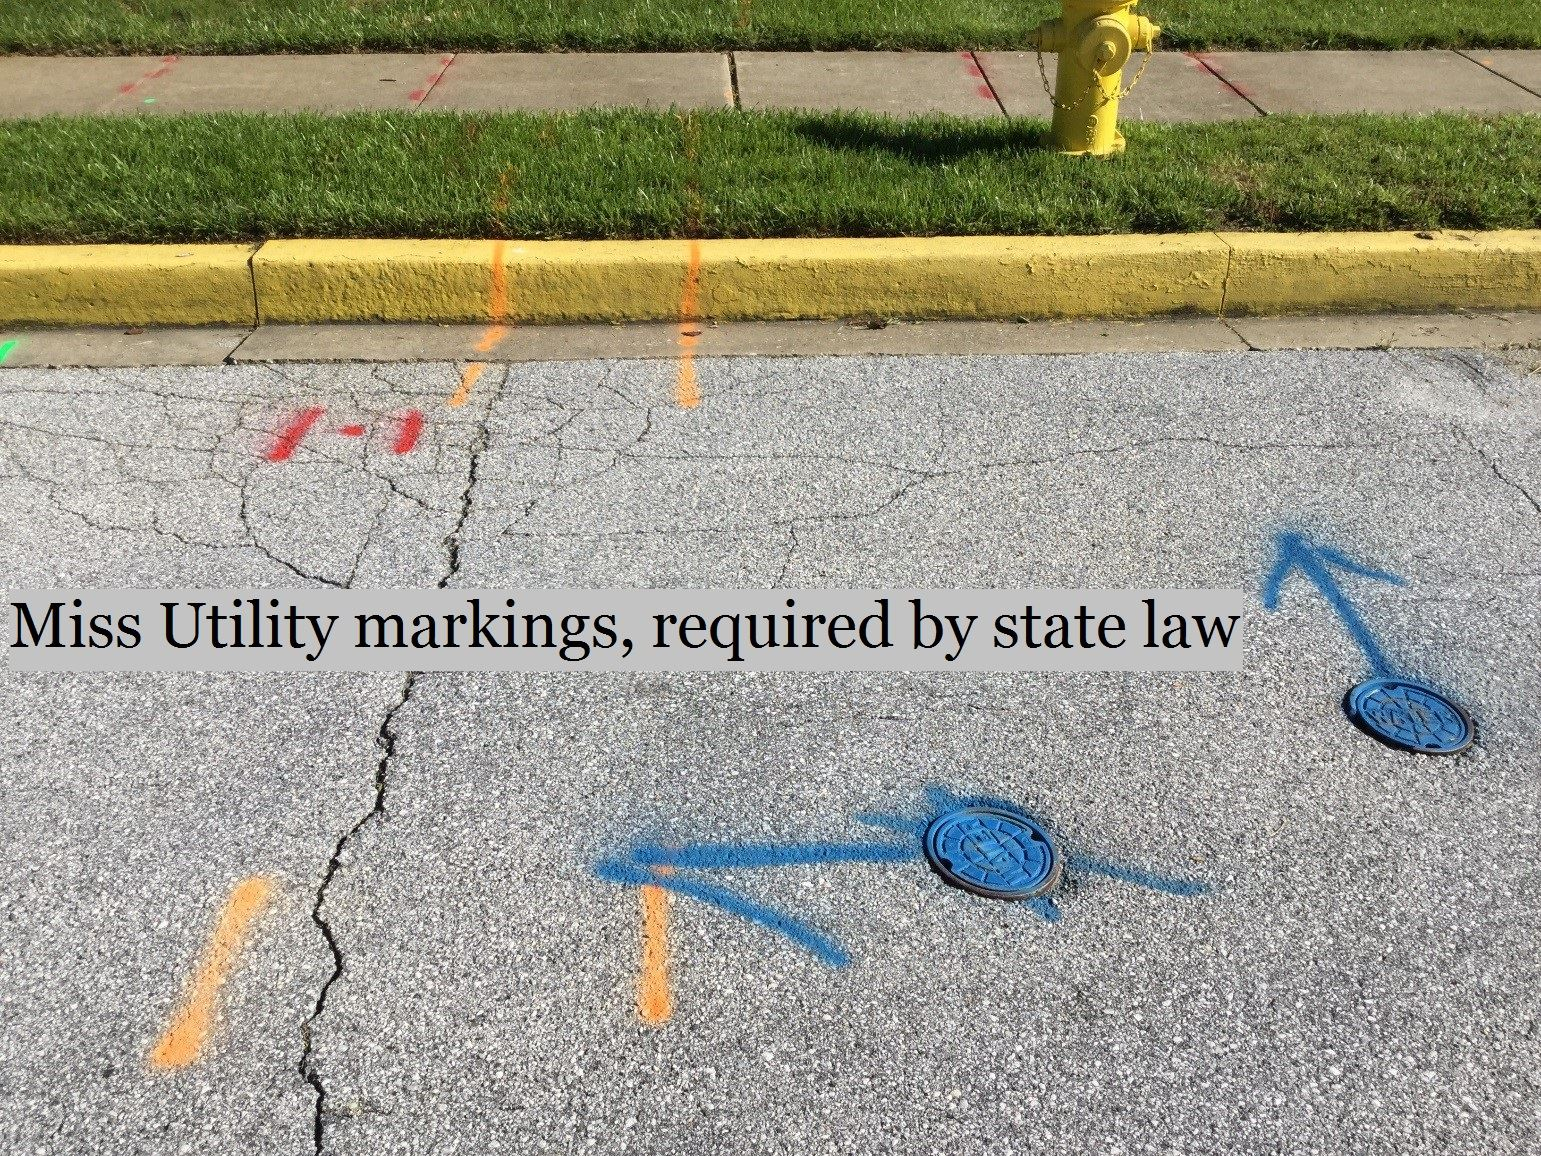 Miss Utility markings state law